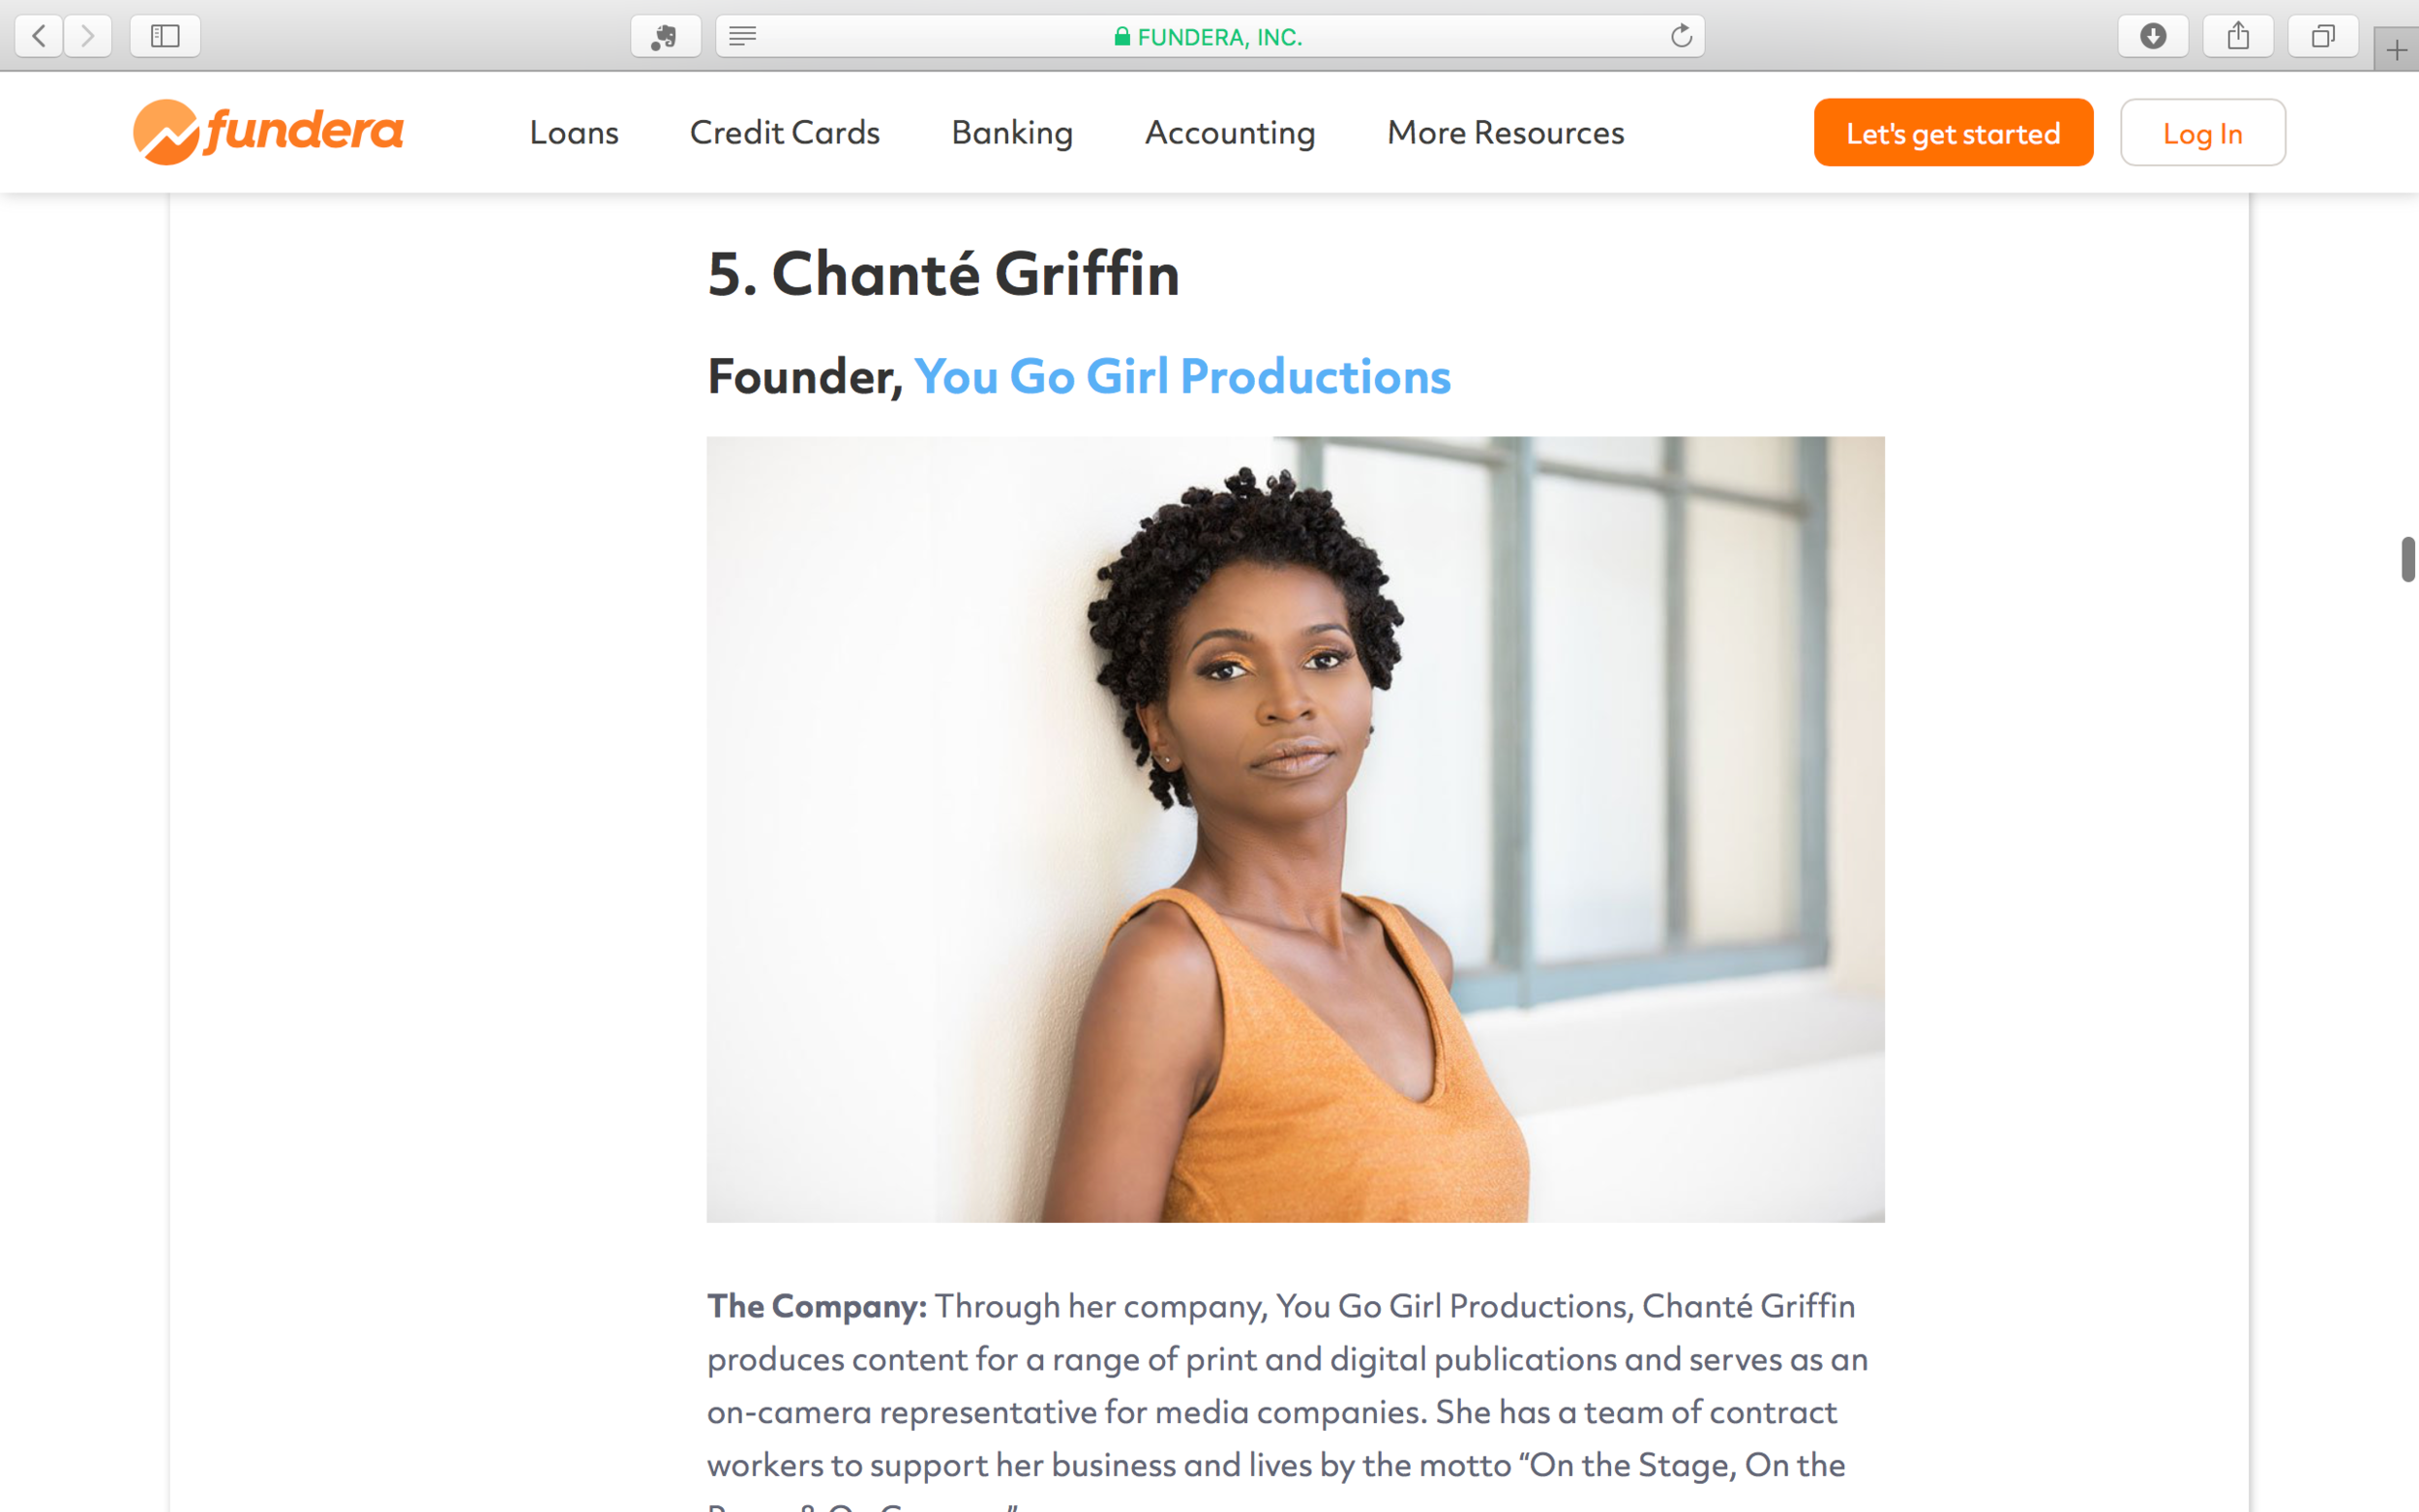 Fundera - I'm #5 on Fundera's list of women of color entrepreneurs.